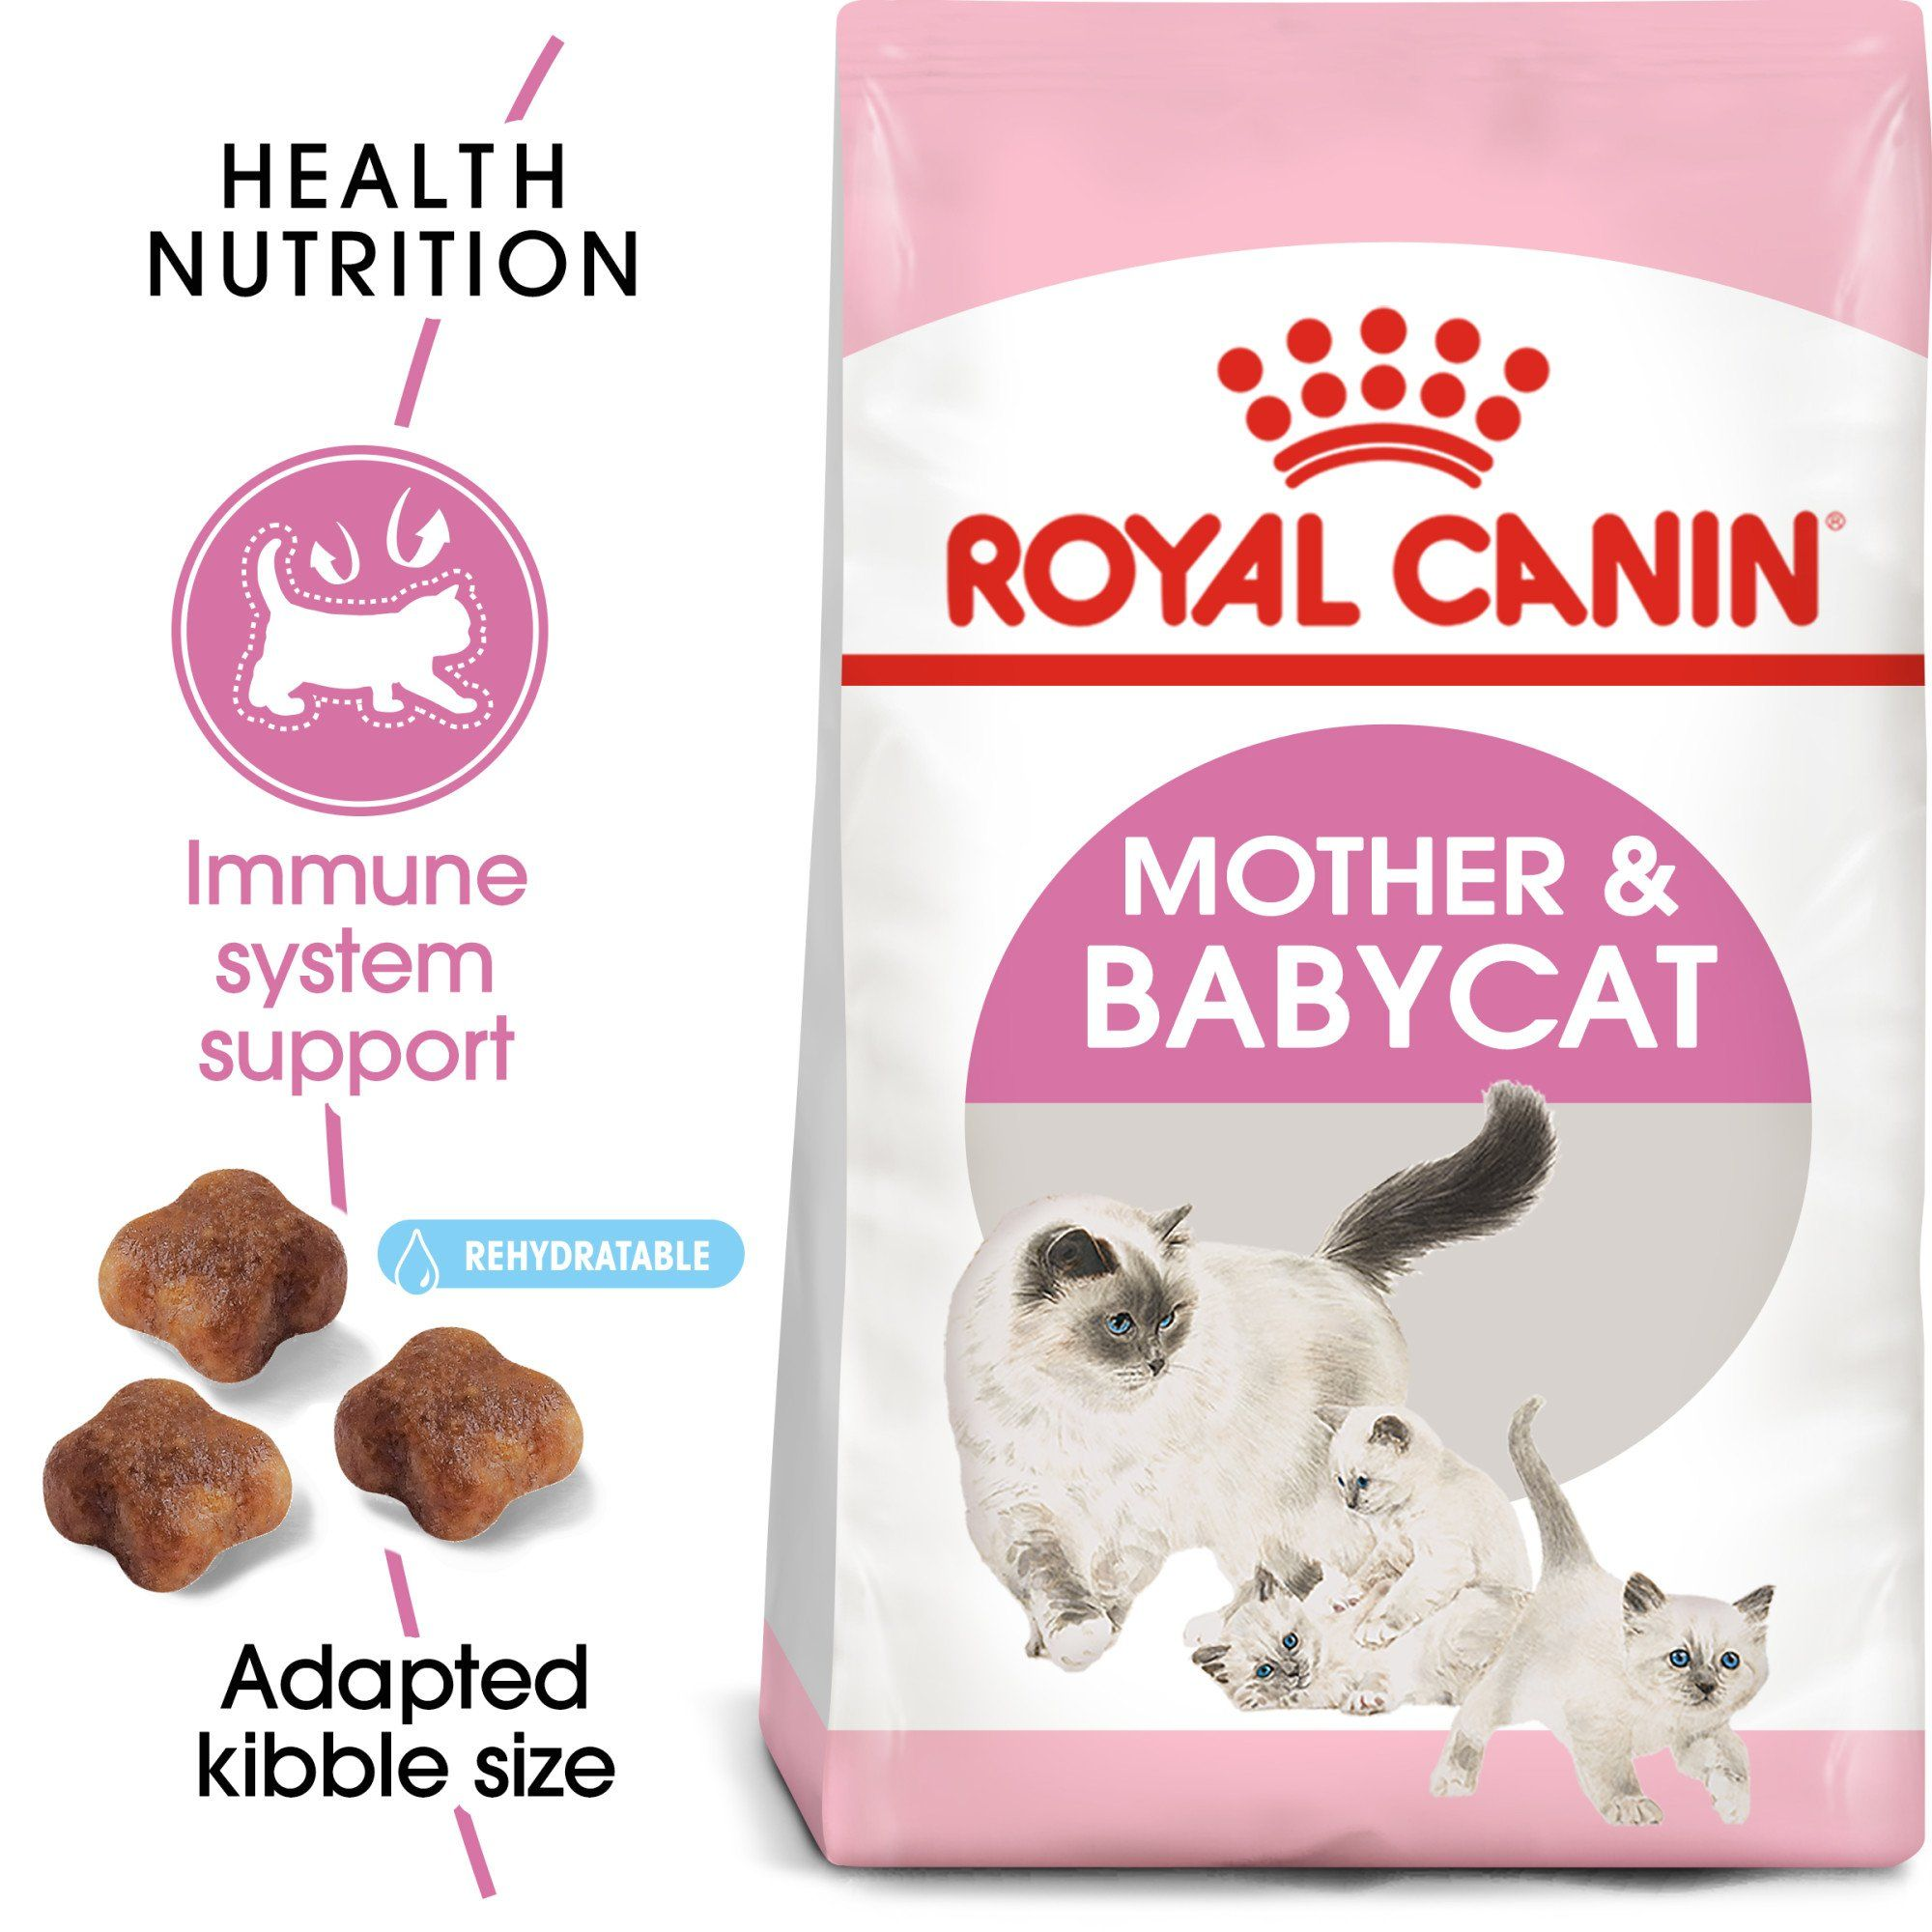 Royal Canin Mother & Babycat Dry Cat Food for Newborn